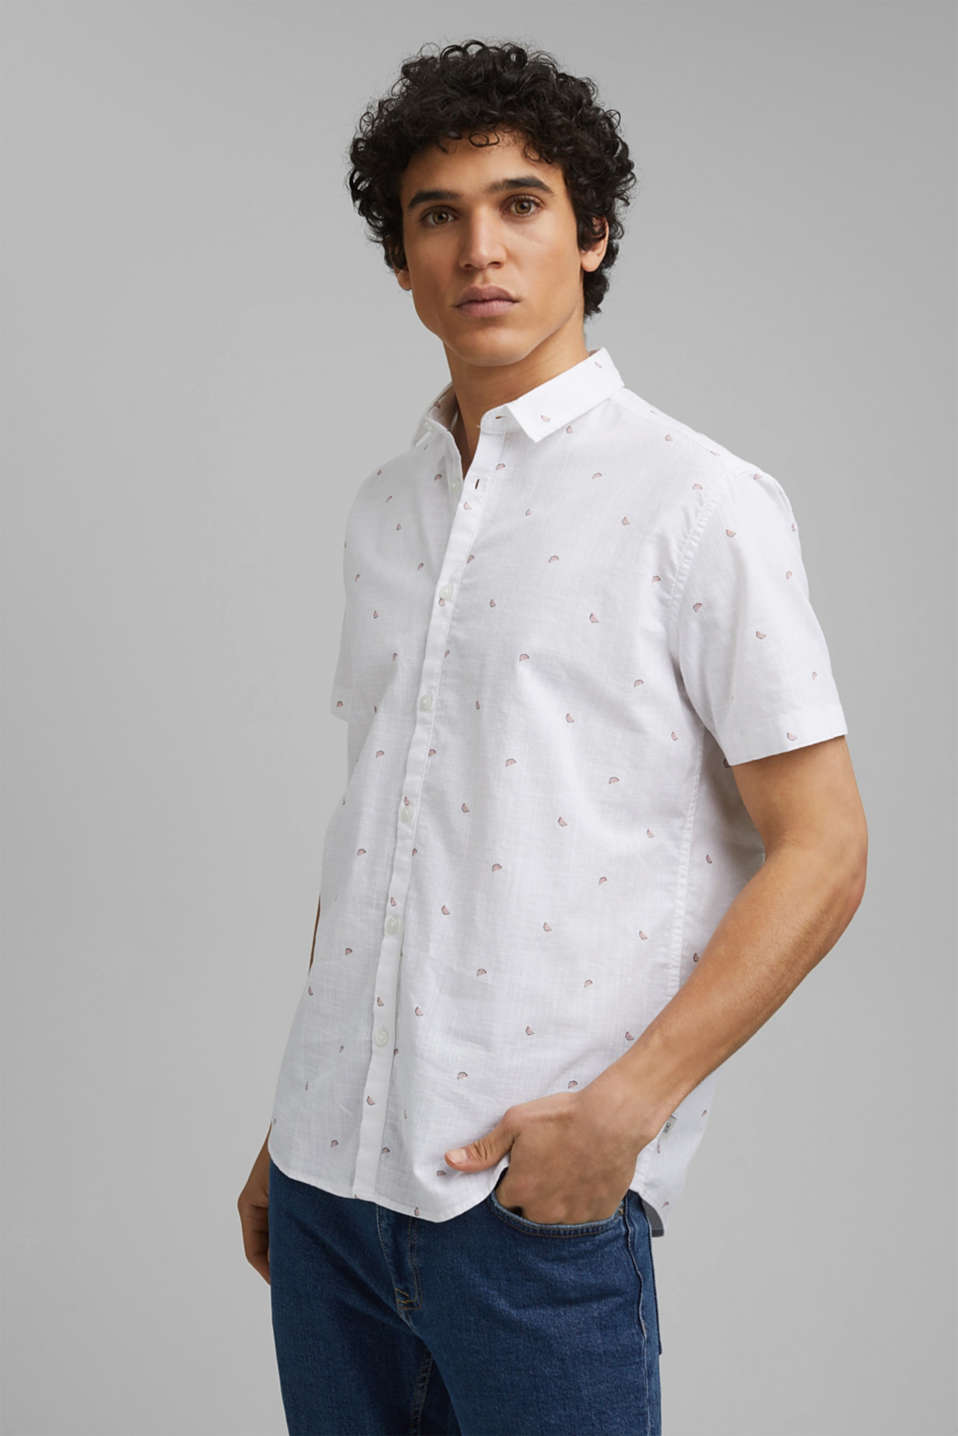 edc - Short-sleeved shirt with print, organic cotton